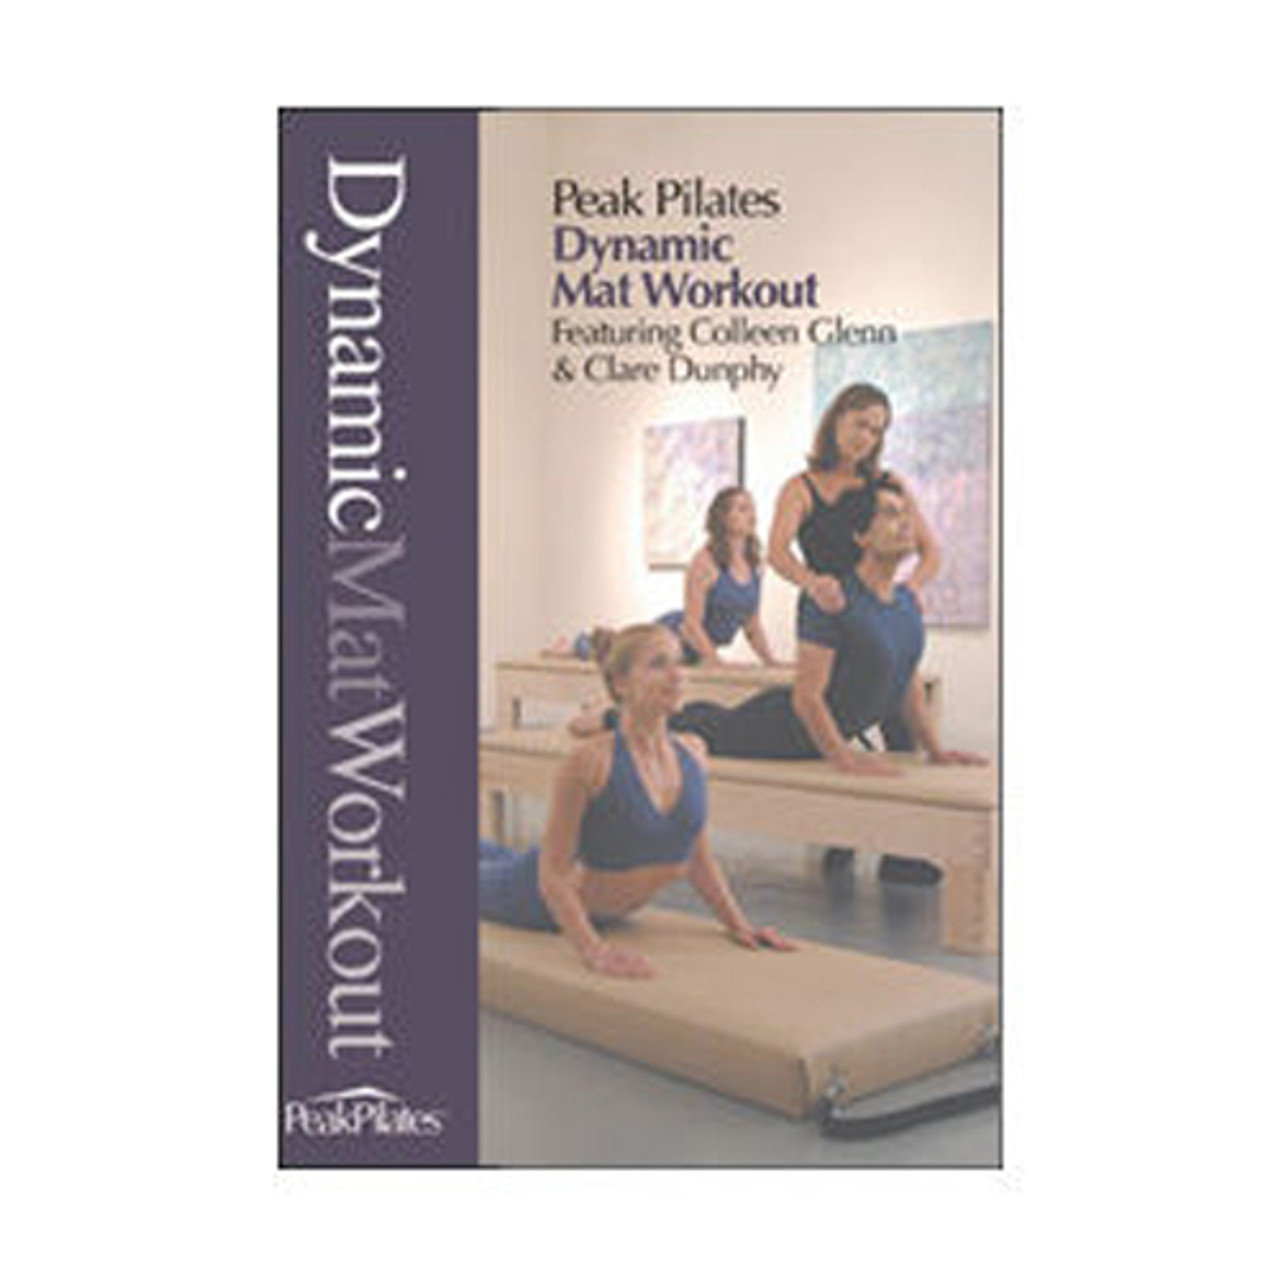 Dynamic Mat Workout DVD